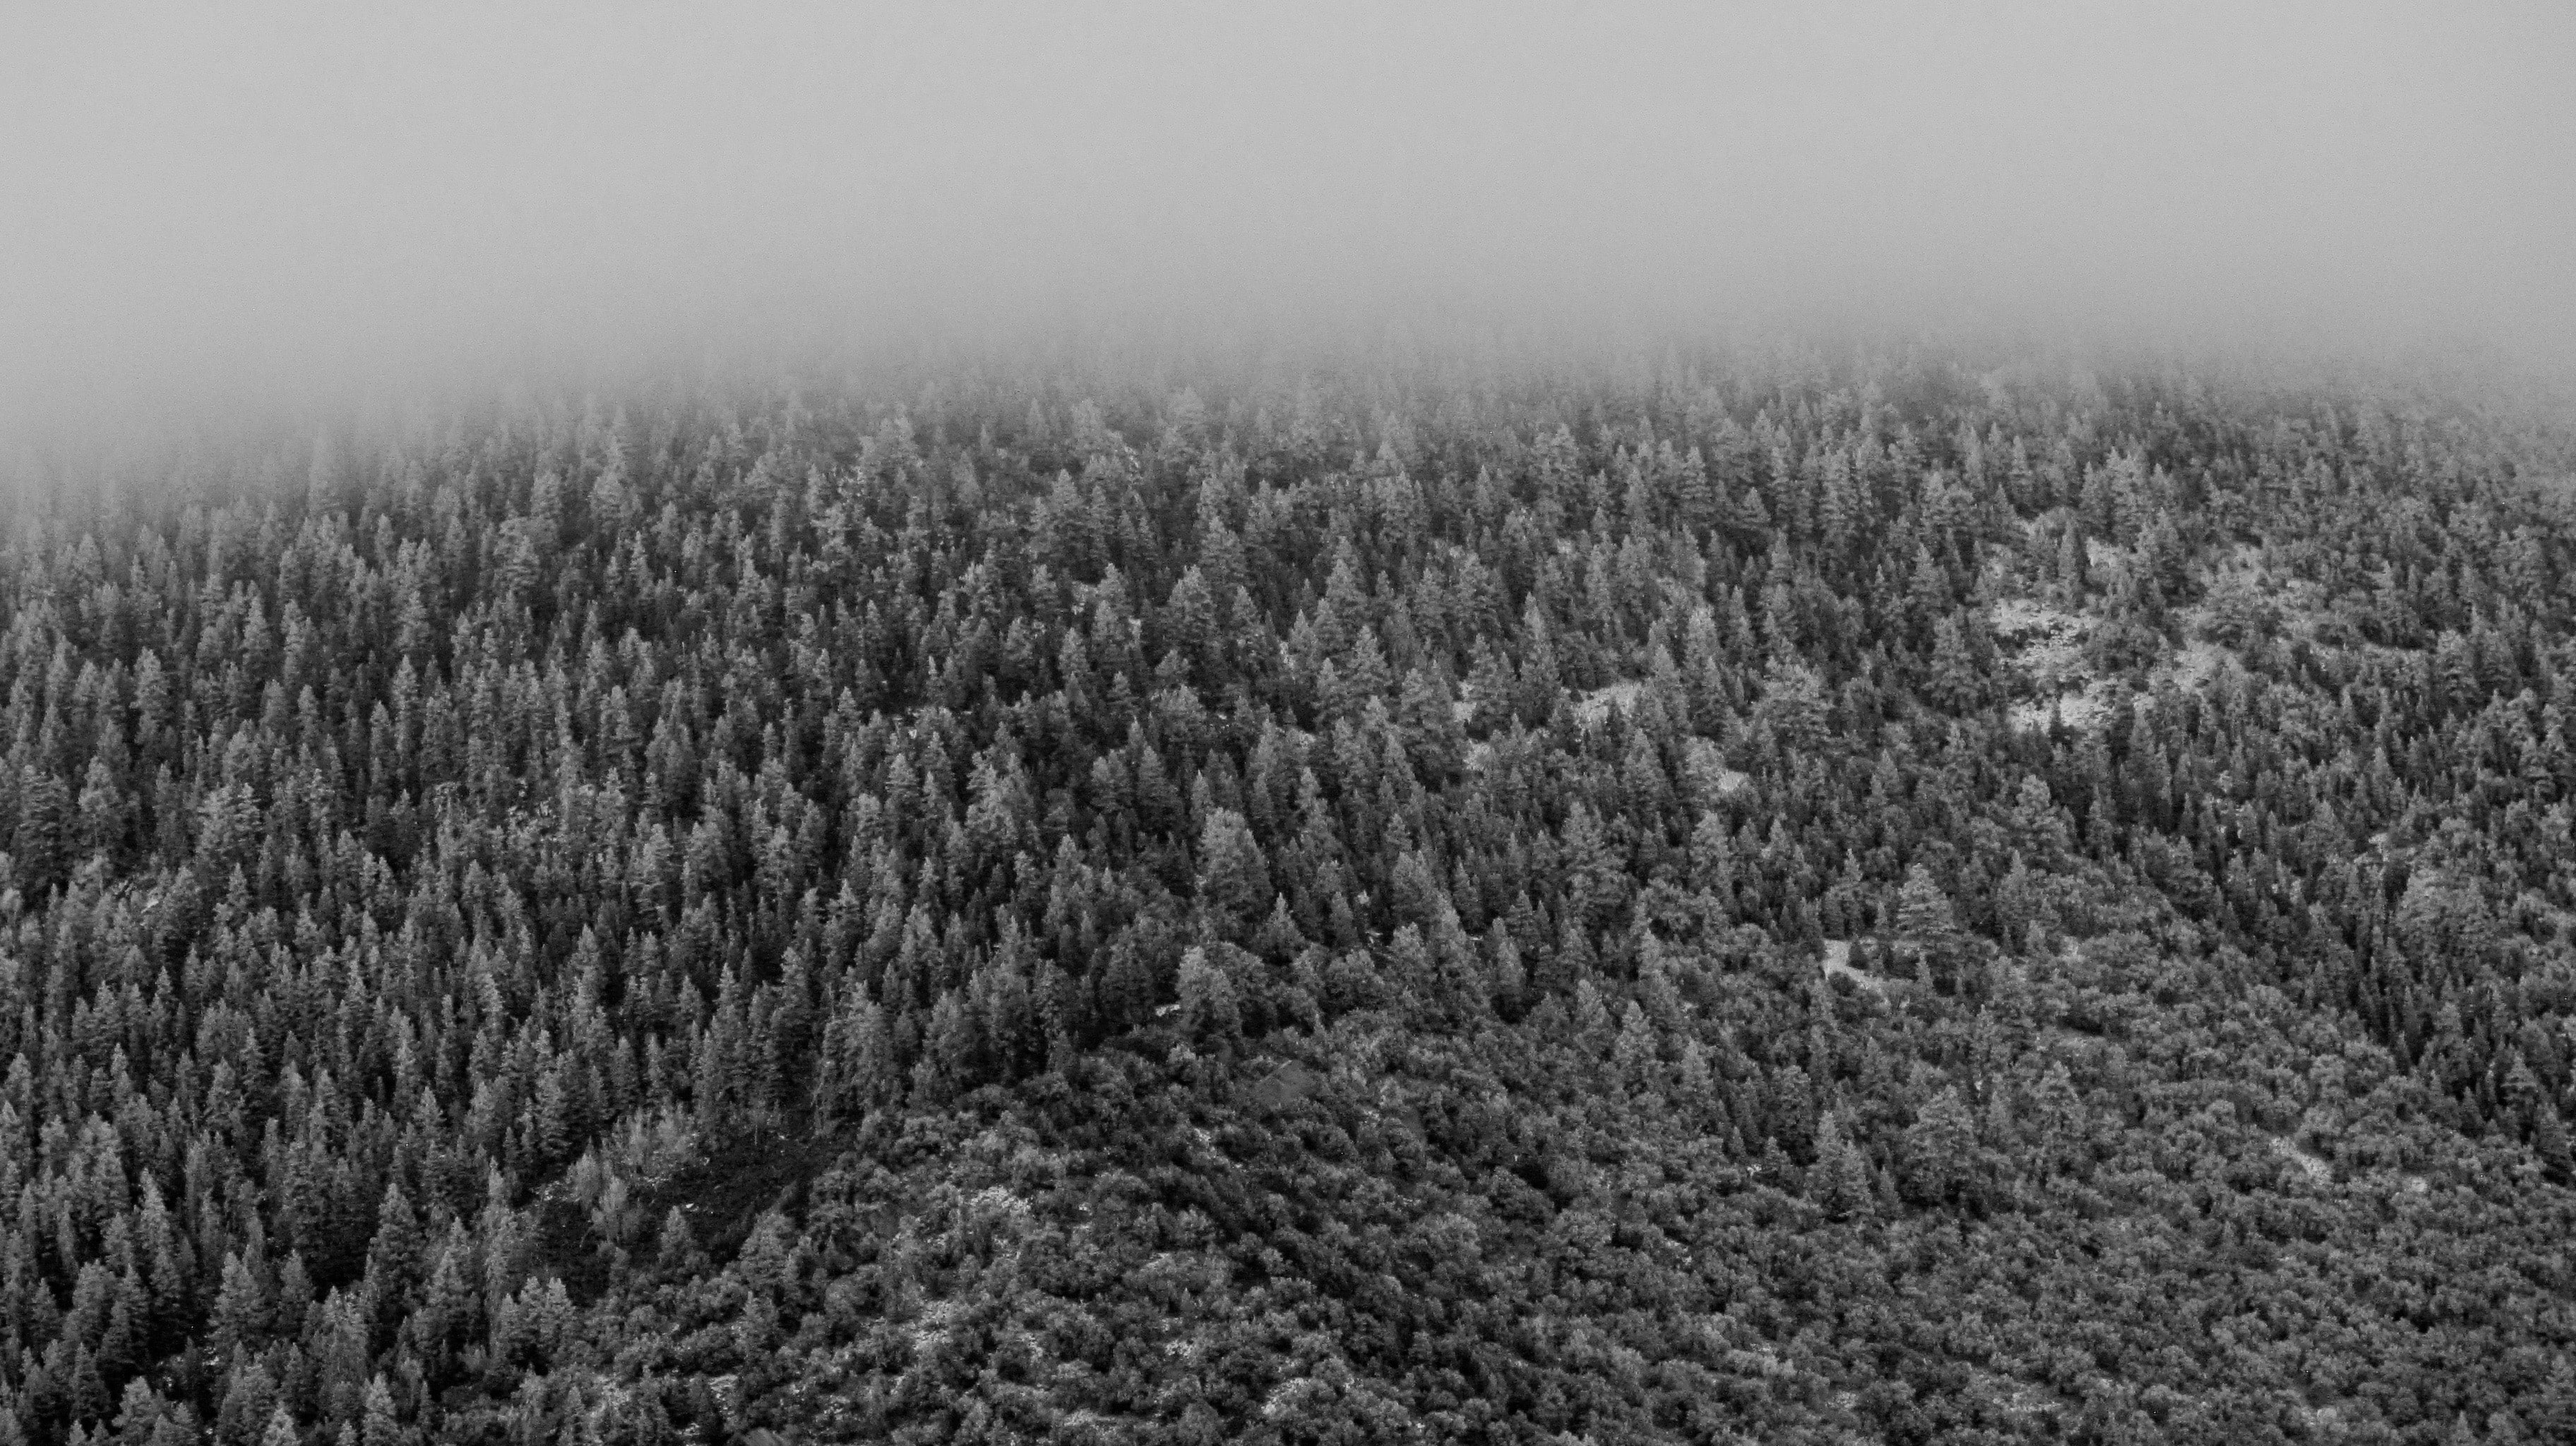 grayscale photo of forest